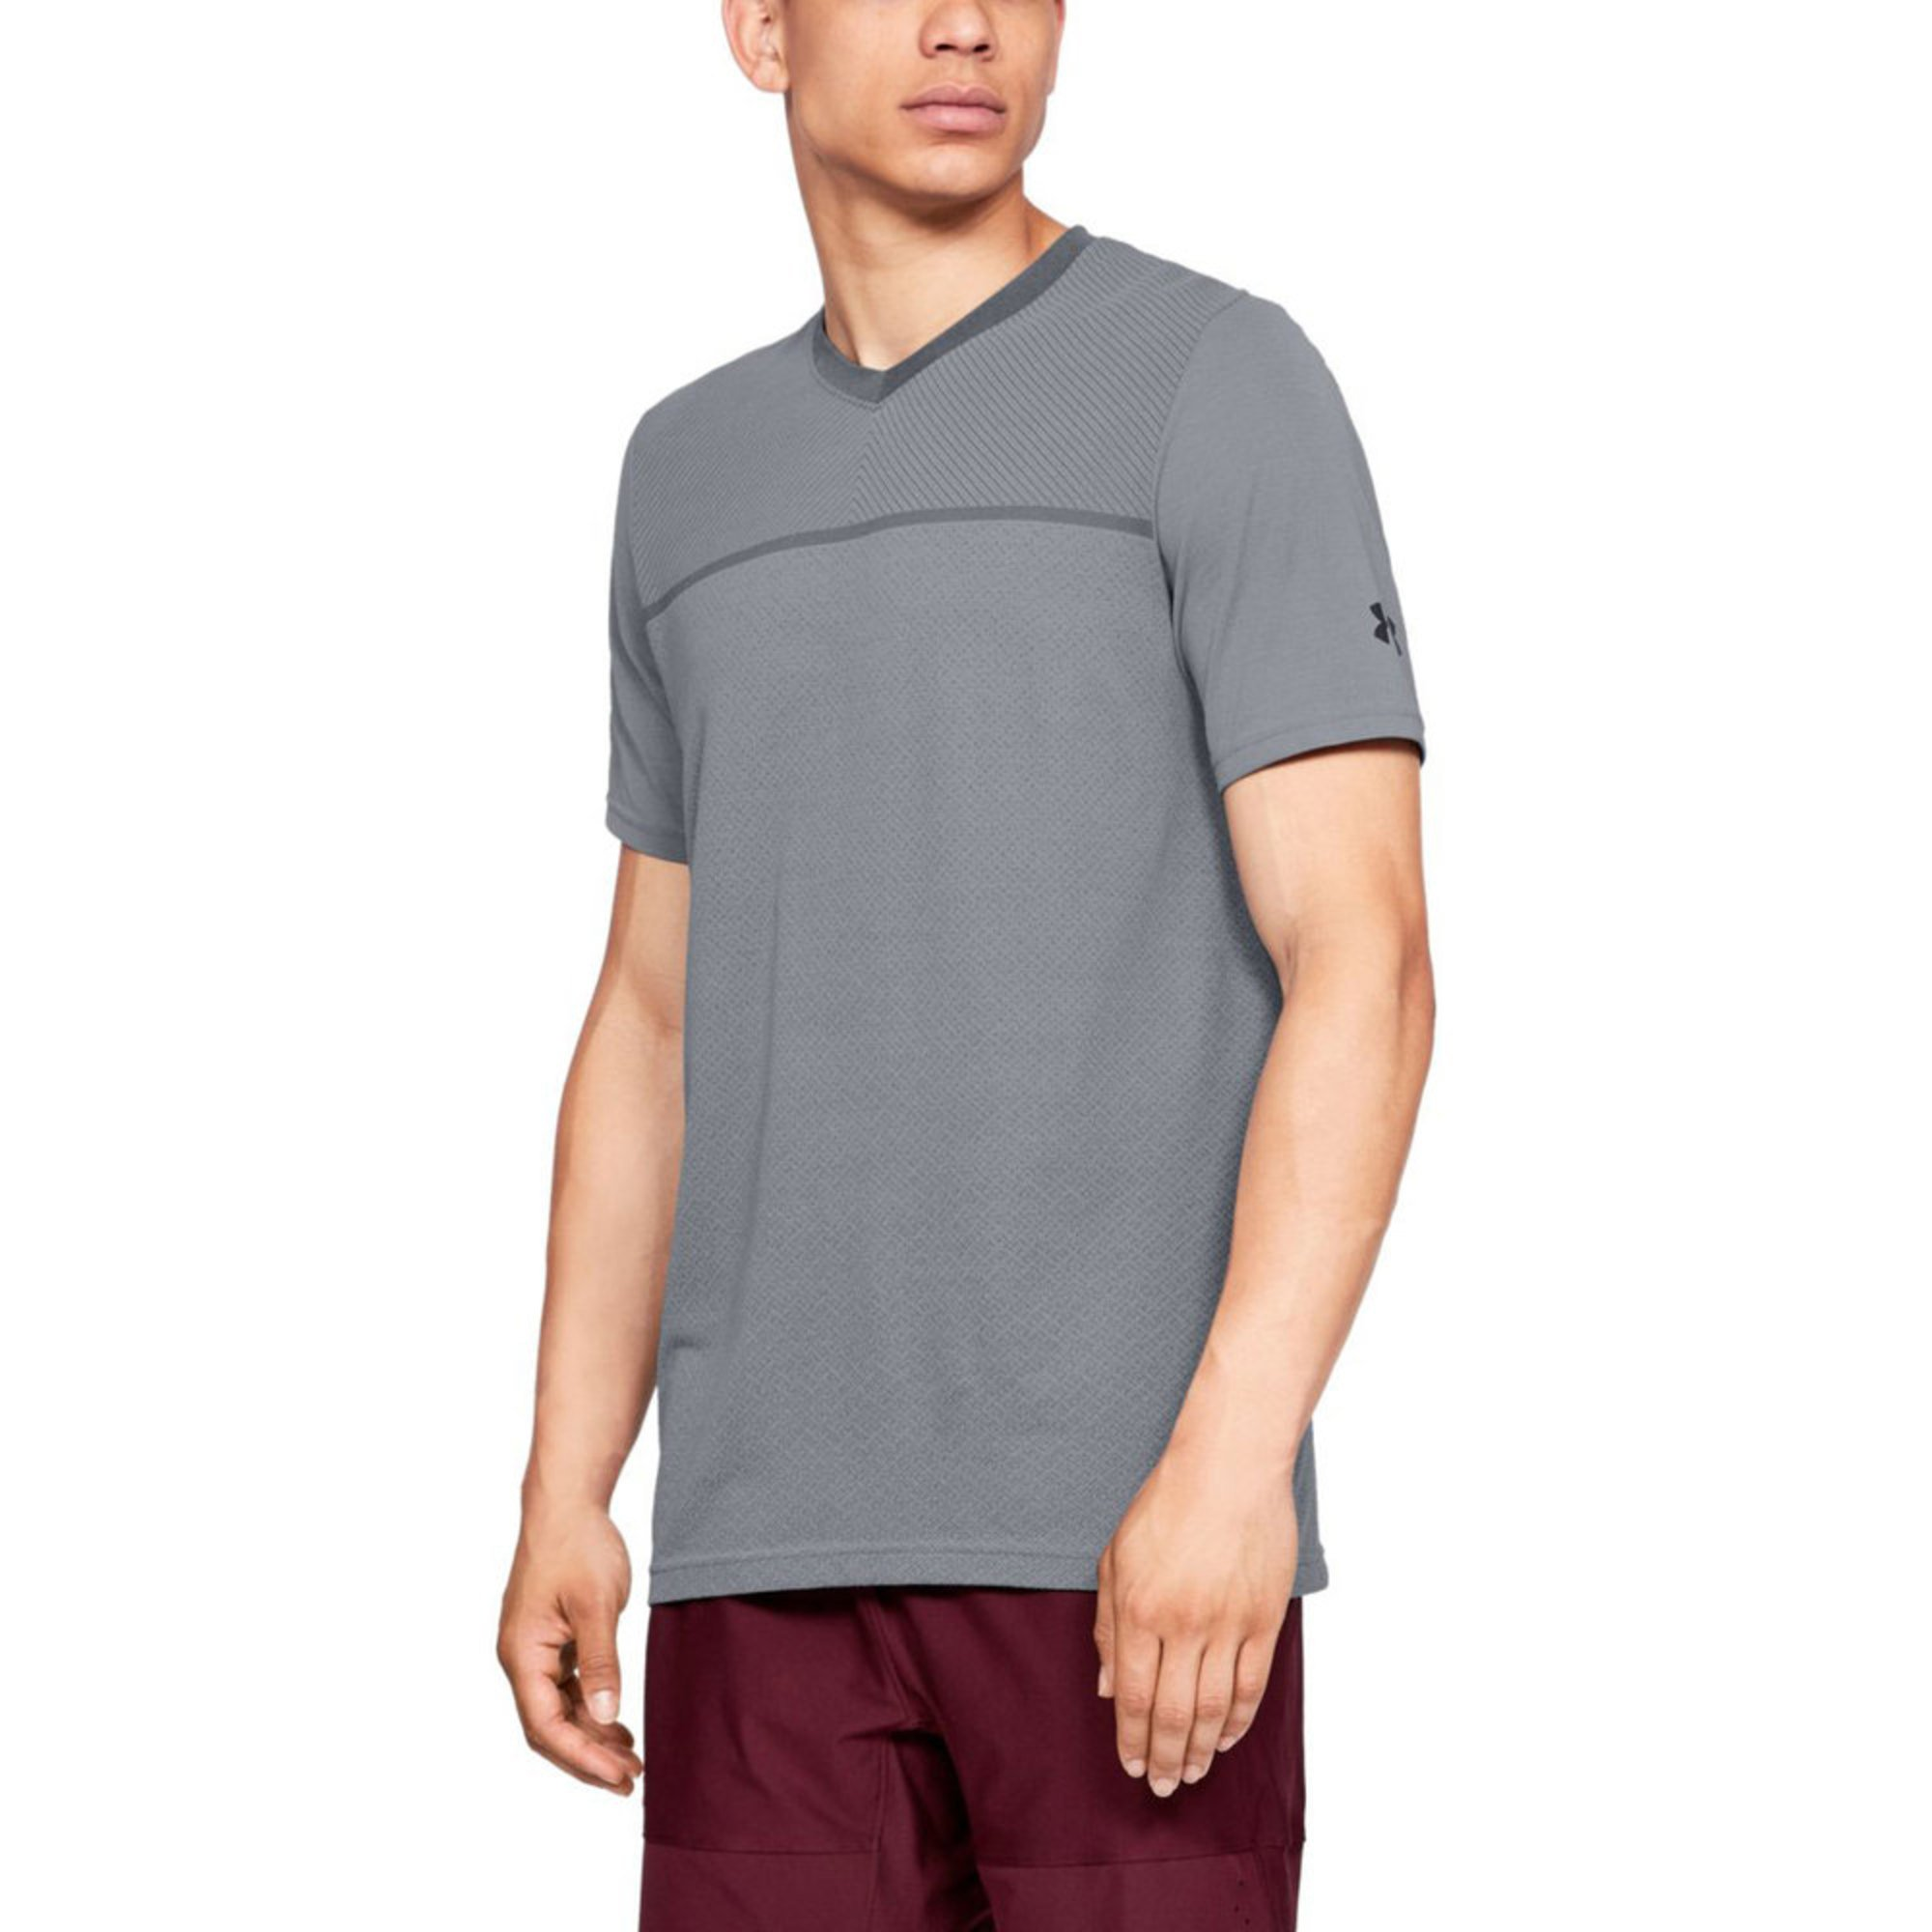 ab15b9a32 Under Armour Men's Vanish Seamless Short Sleeve V-neck Tee | Active ...